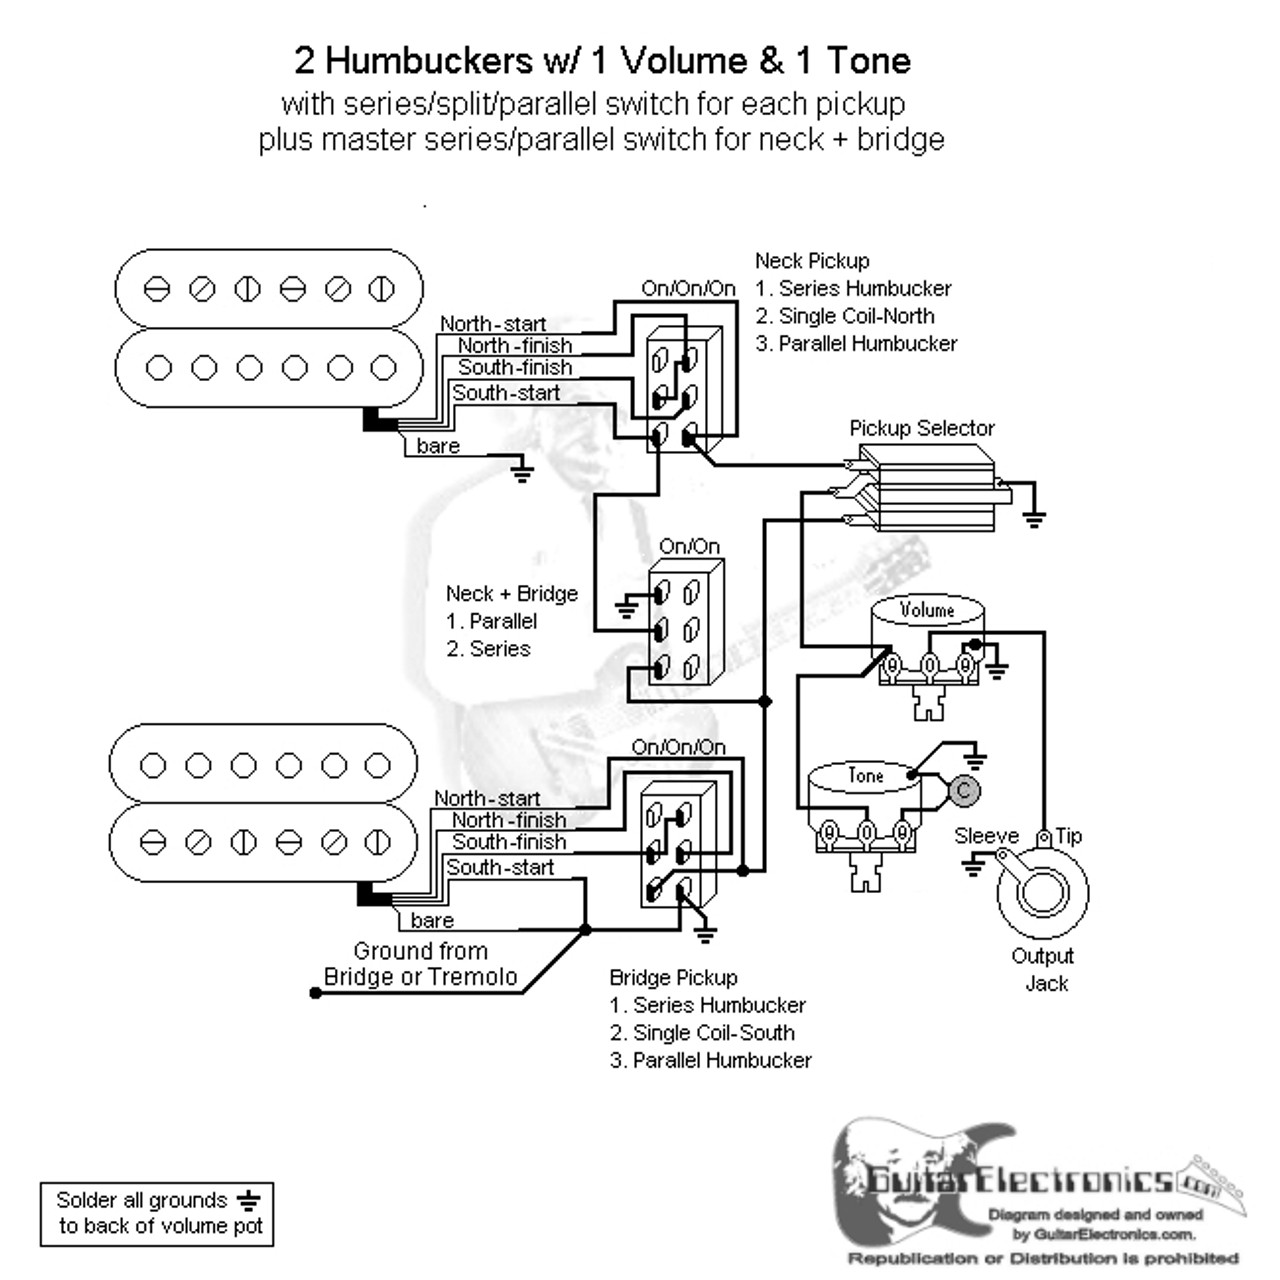 small resolution of 2 hbs 3 way toggle 1 vol 1 tone series split parallel u0026 master ethernet switch wiring diagram 2 hbs 3 way toggle 1 vol 1 tone series split parallel